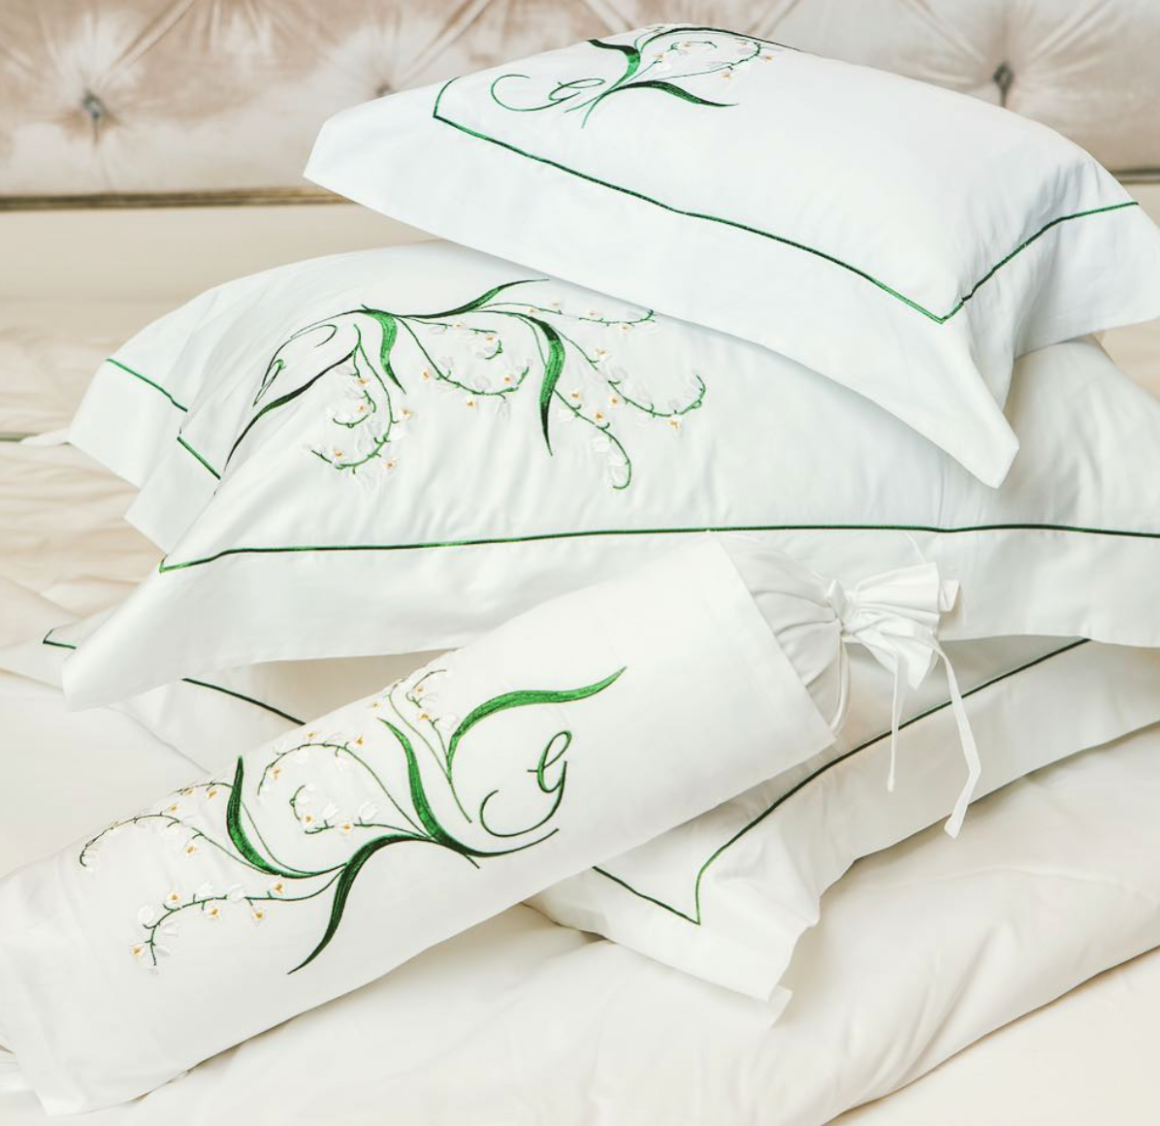 Bed linen collection design